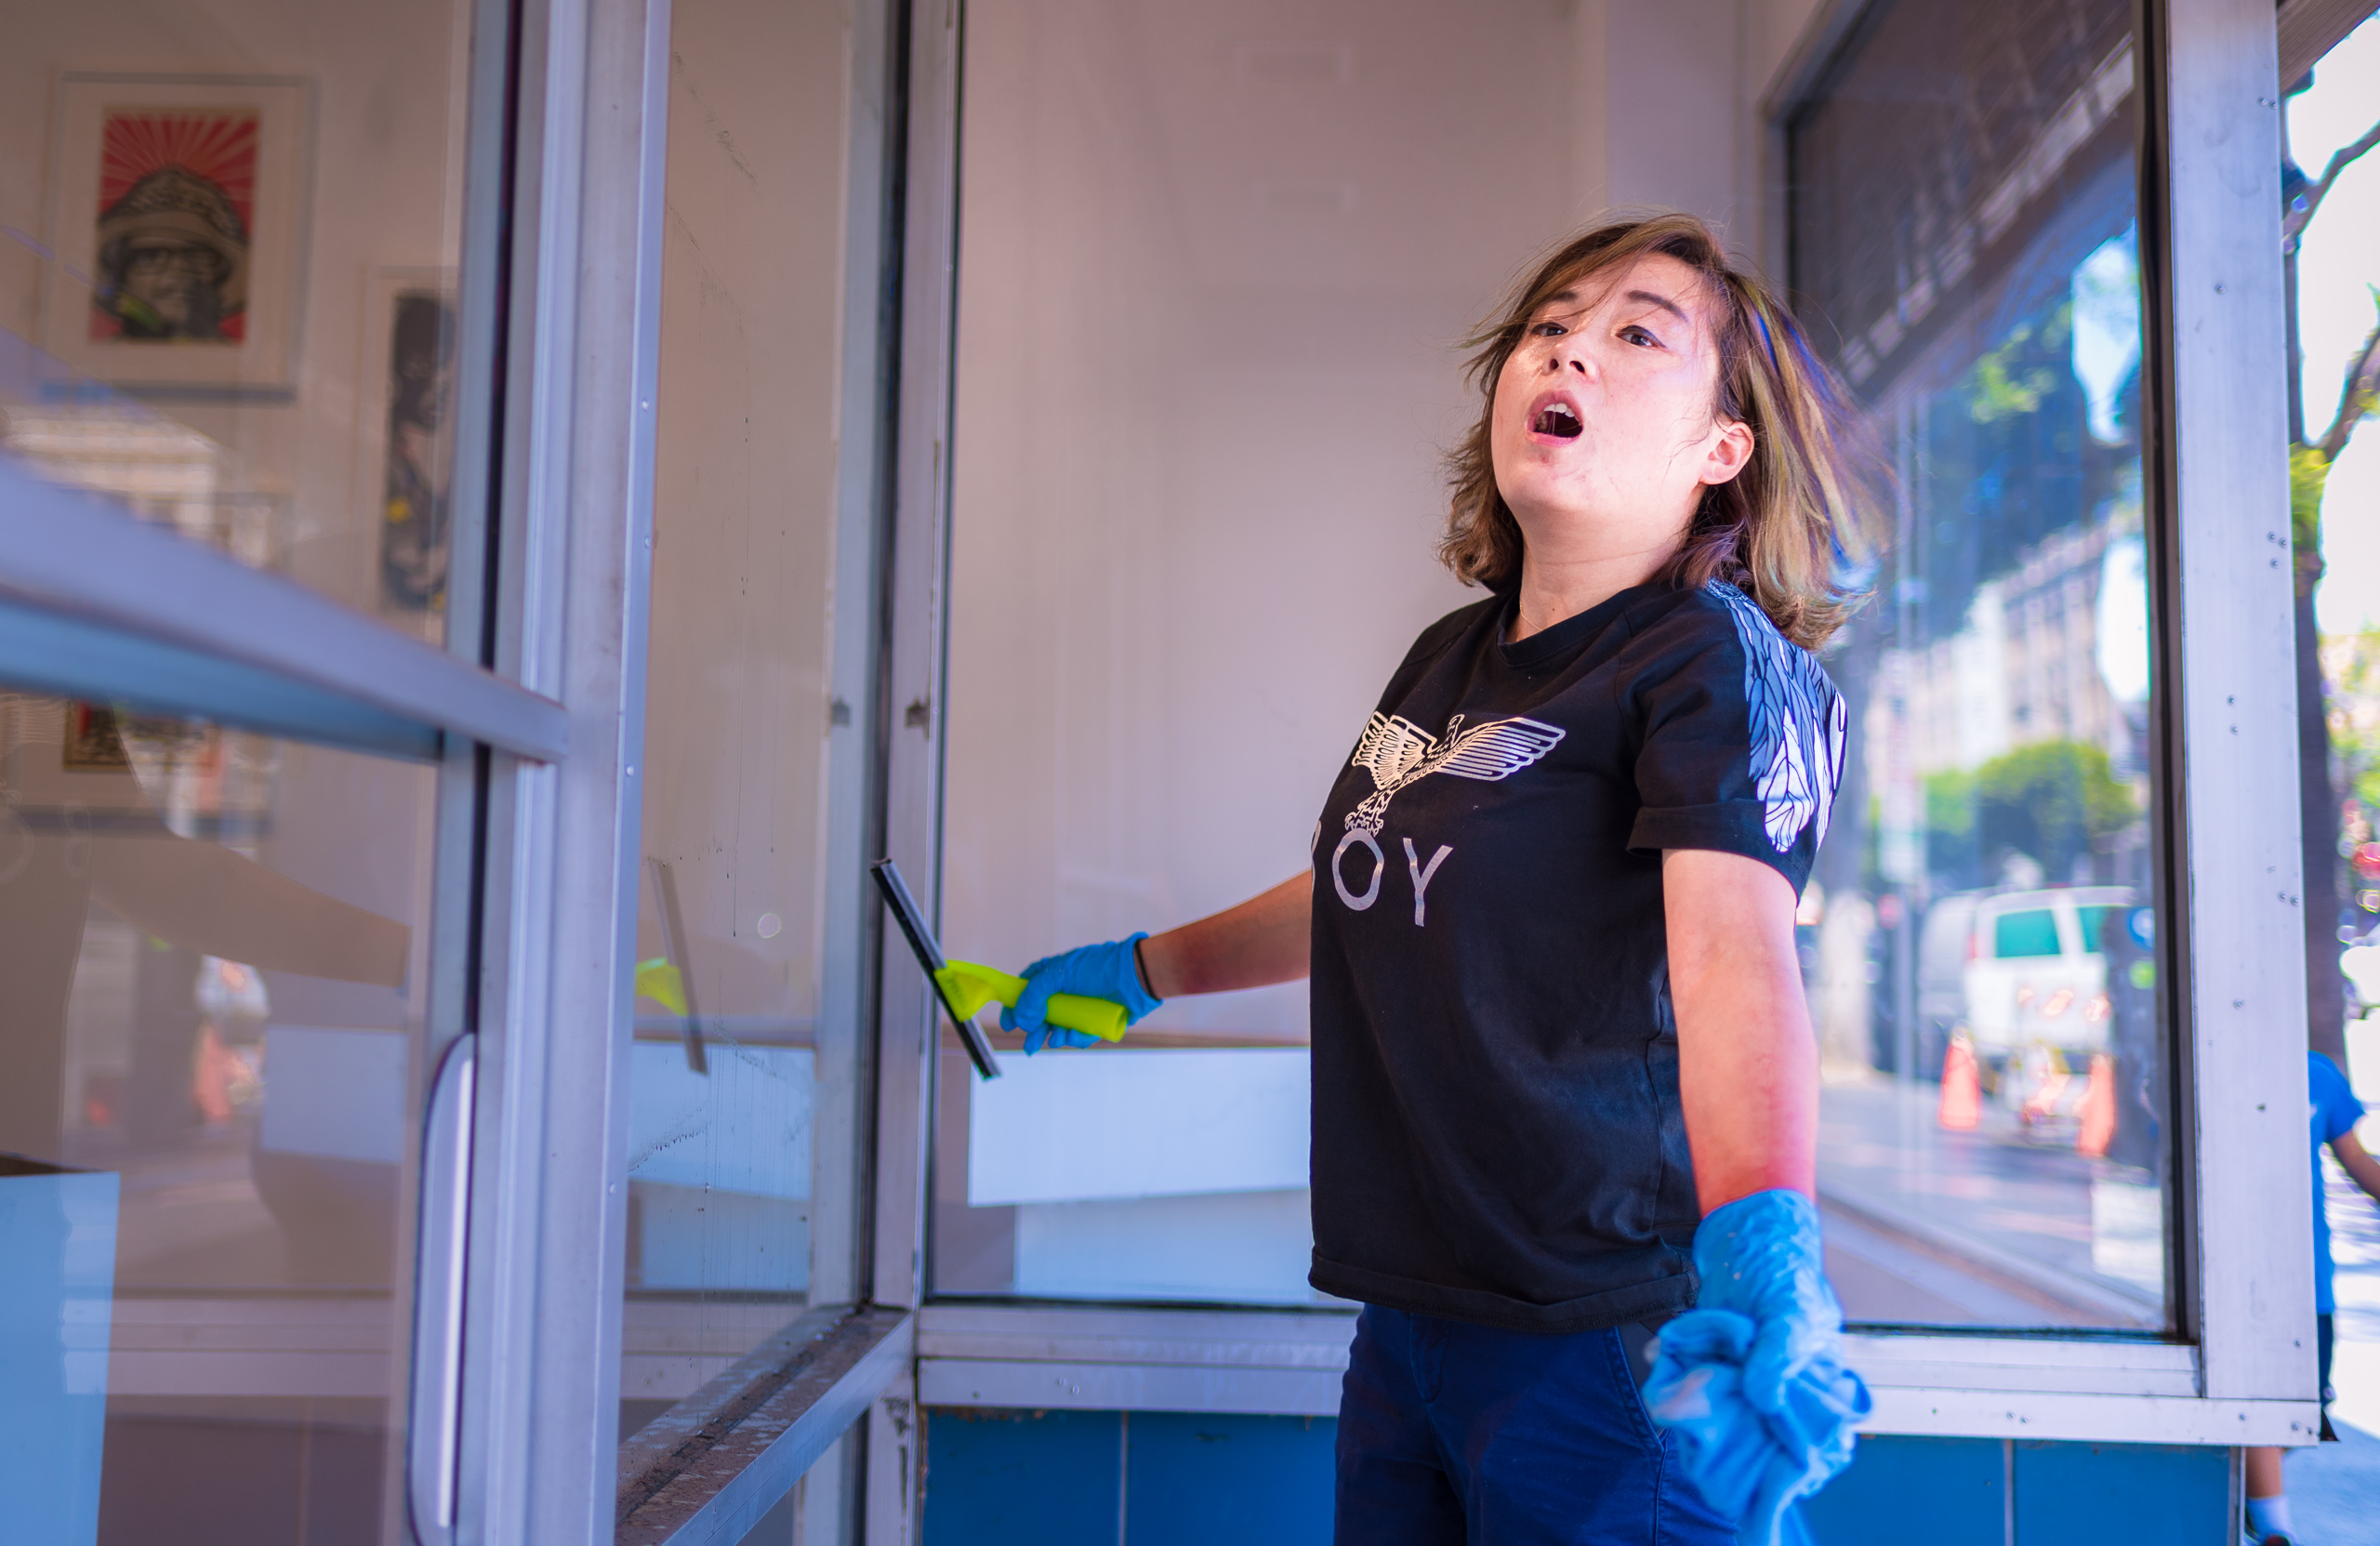 a LACE staff member wearing blue rubber gloves and holding a squeegee in one hand surveys the LACE storefront windows she is cleaning